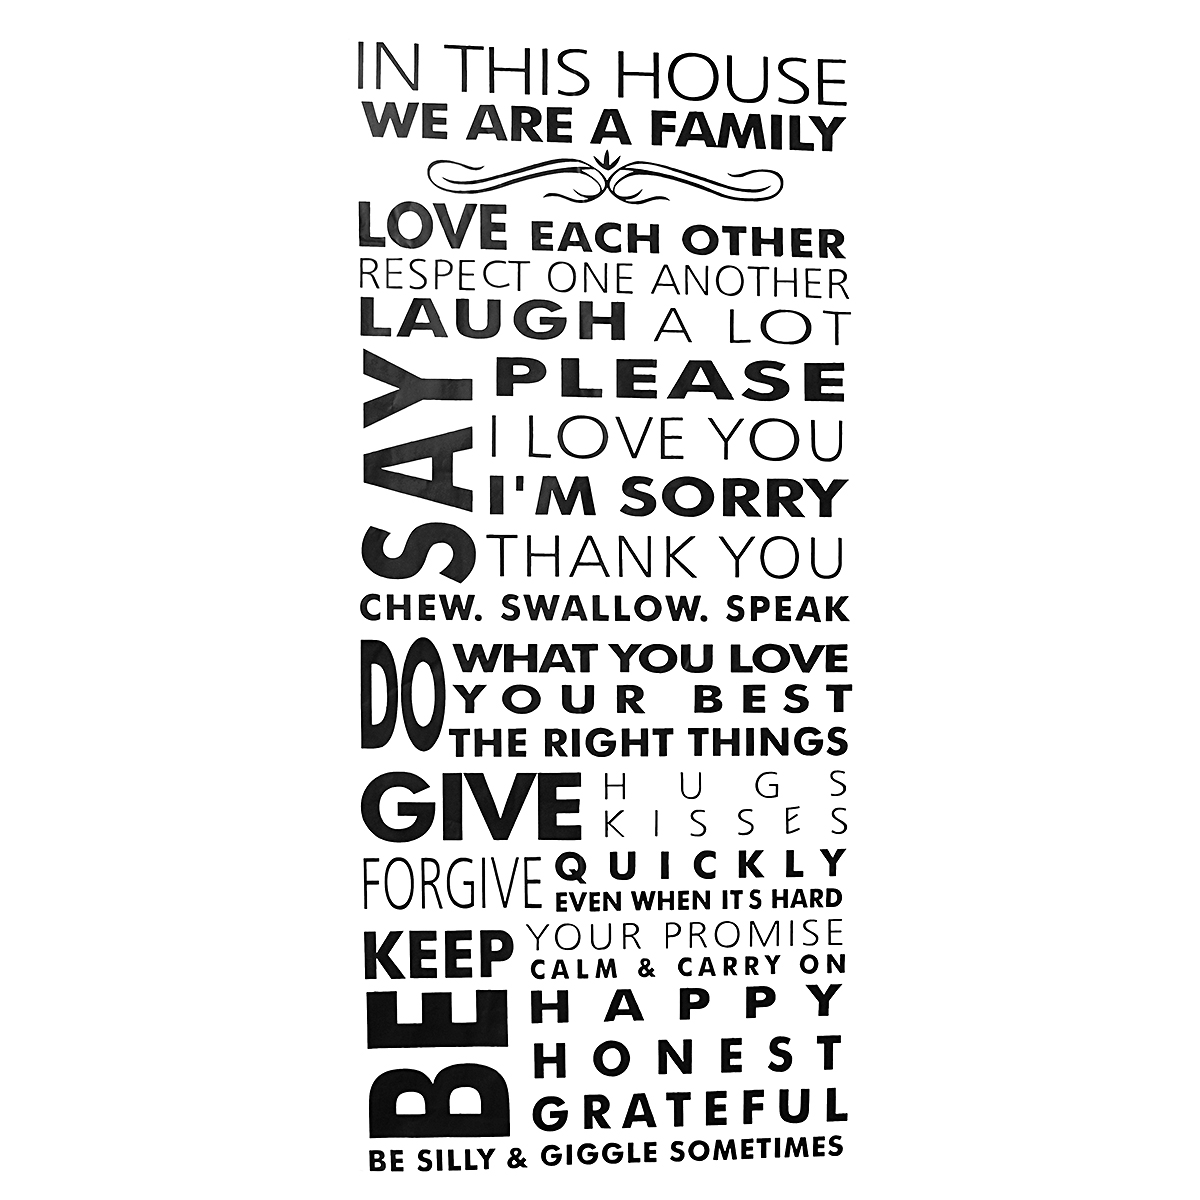 bedroom rules. 50inch removable family rules in this house wall sticker bedroom home decal